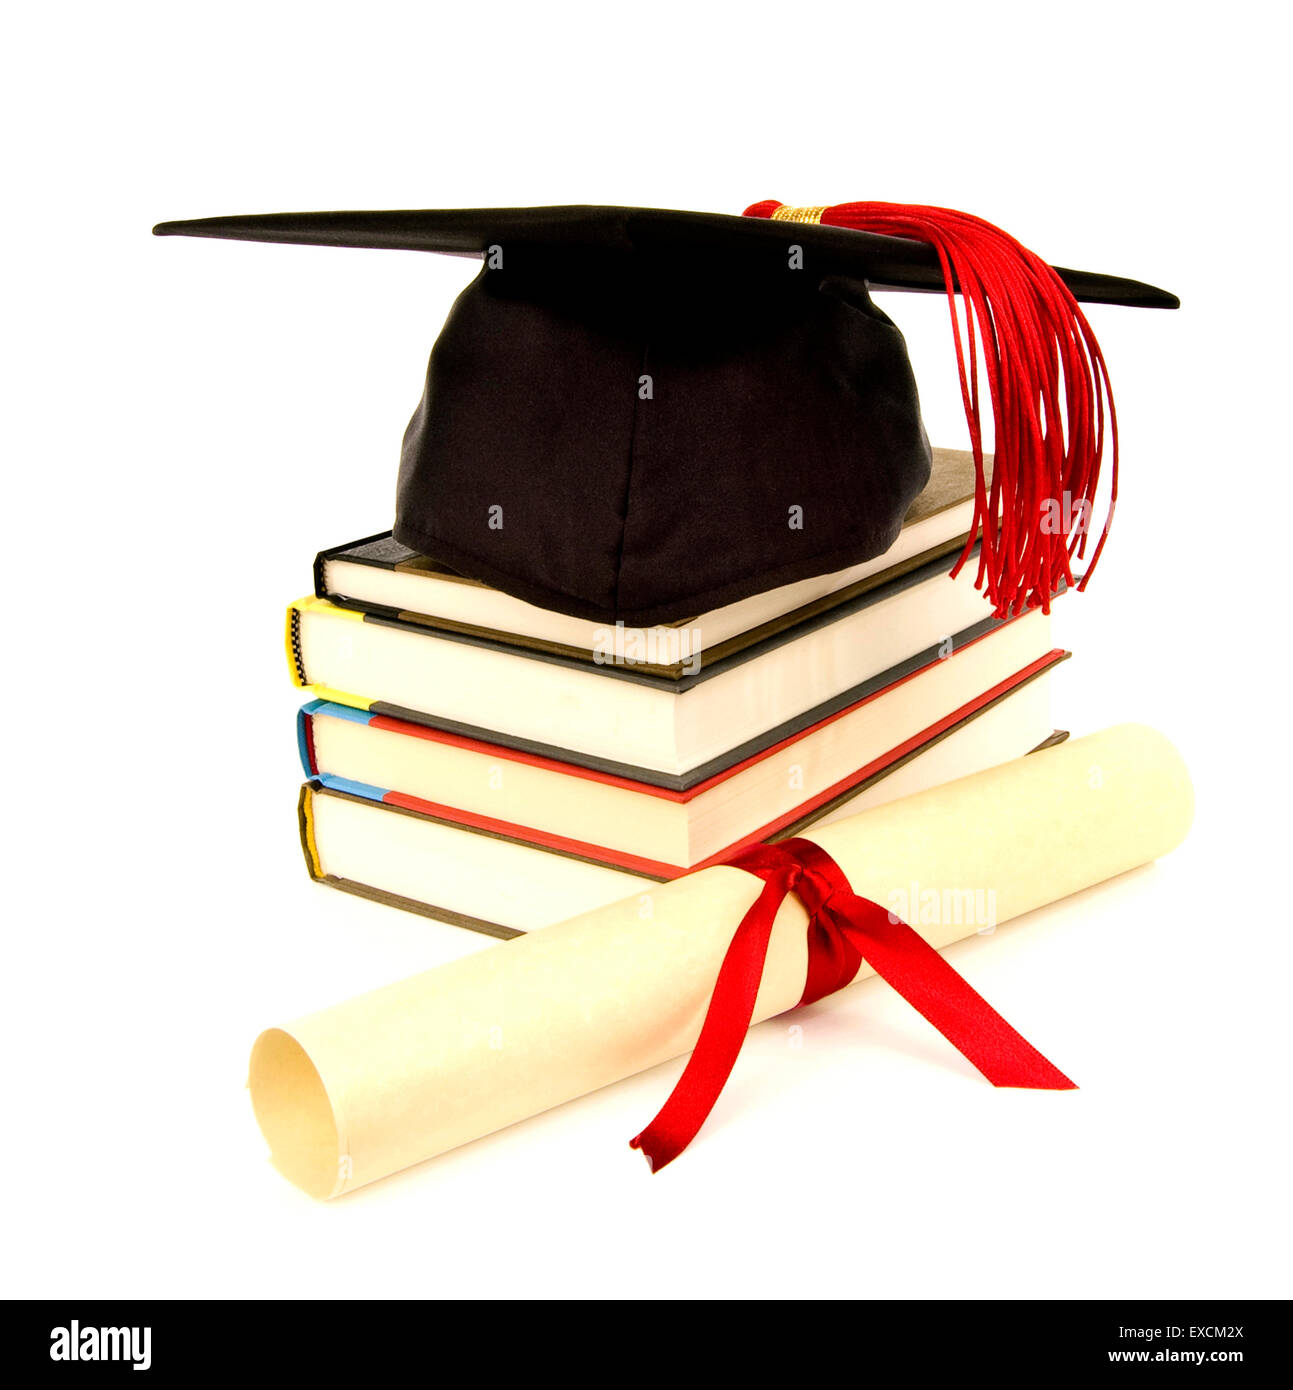 Graduation Cap With Red Tassel, Books and Diploma - Stock Image